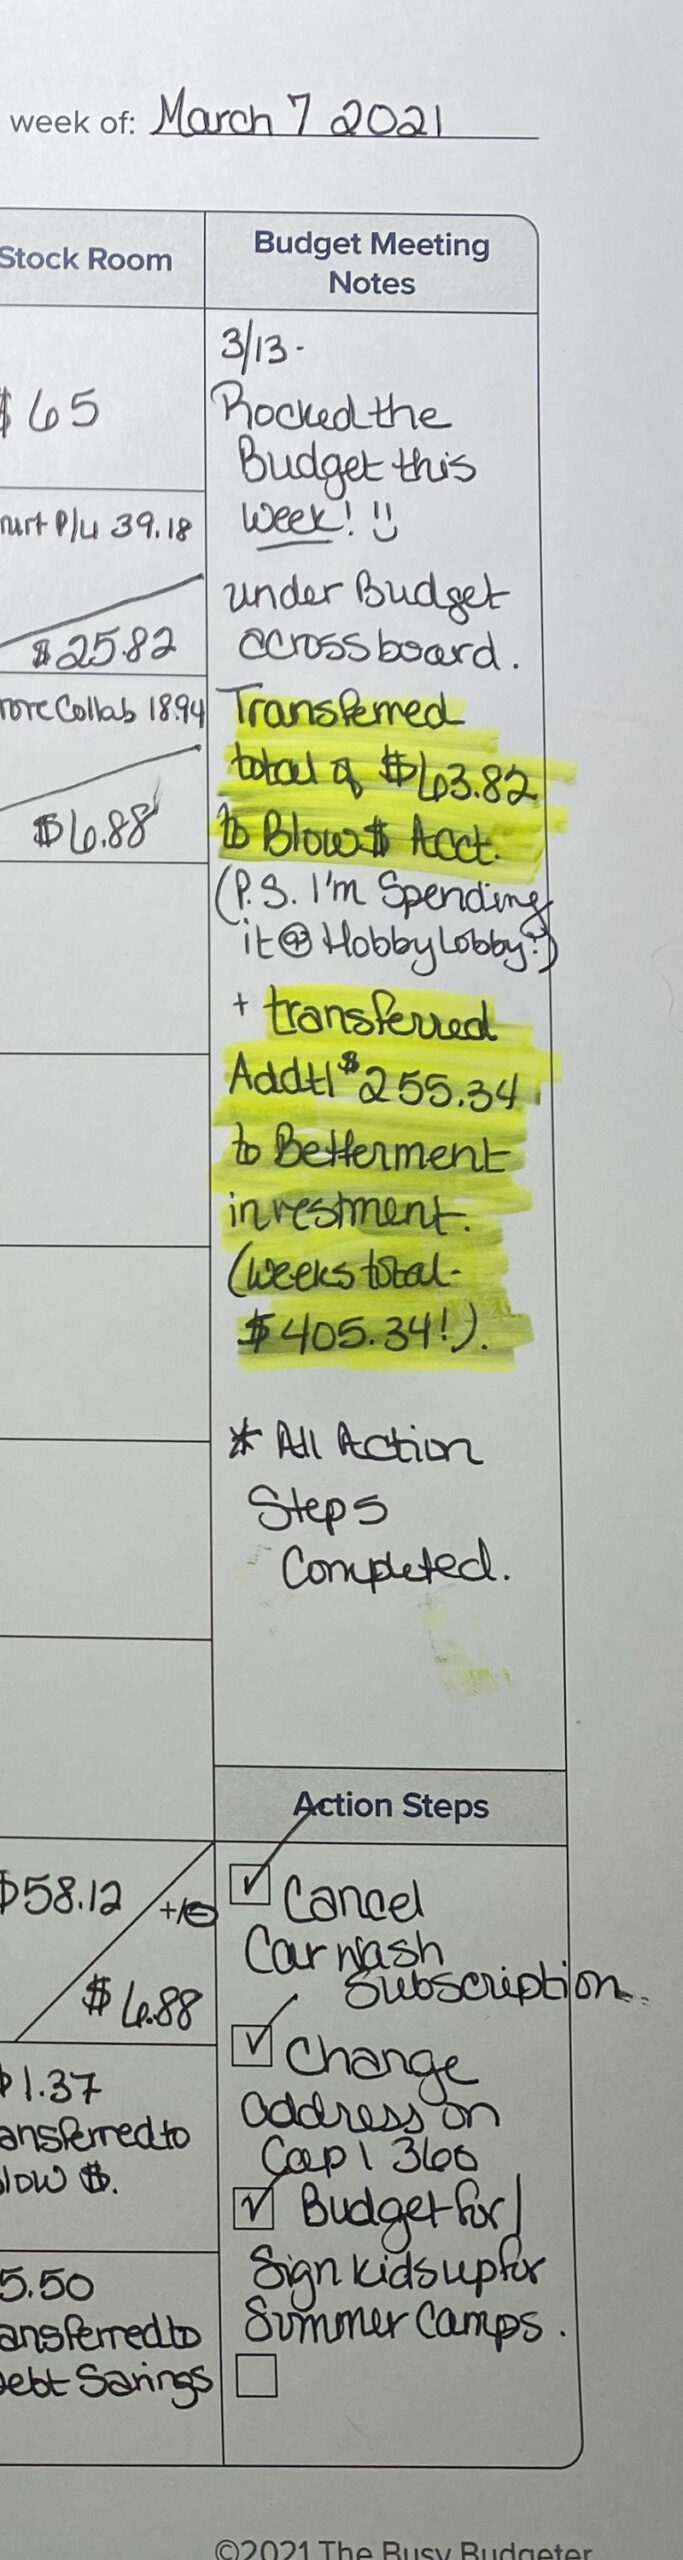 Easy Weekly Budget- Budget meetings and actions step sections.